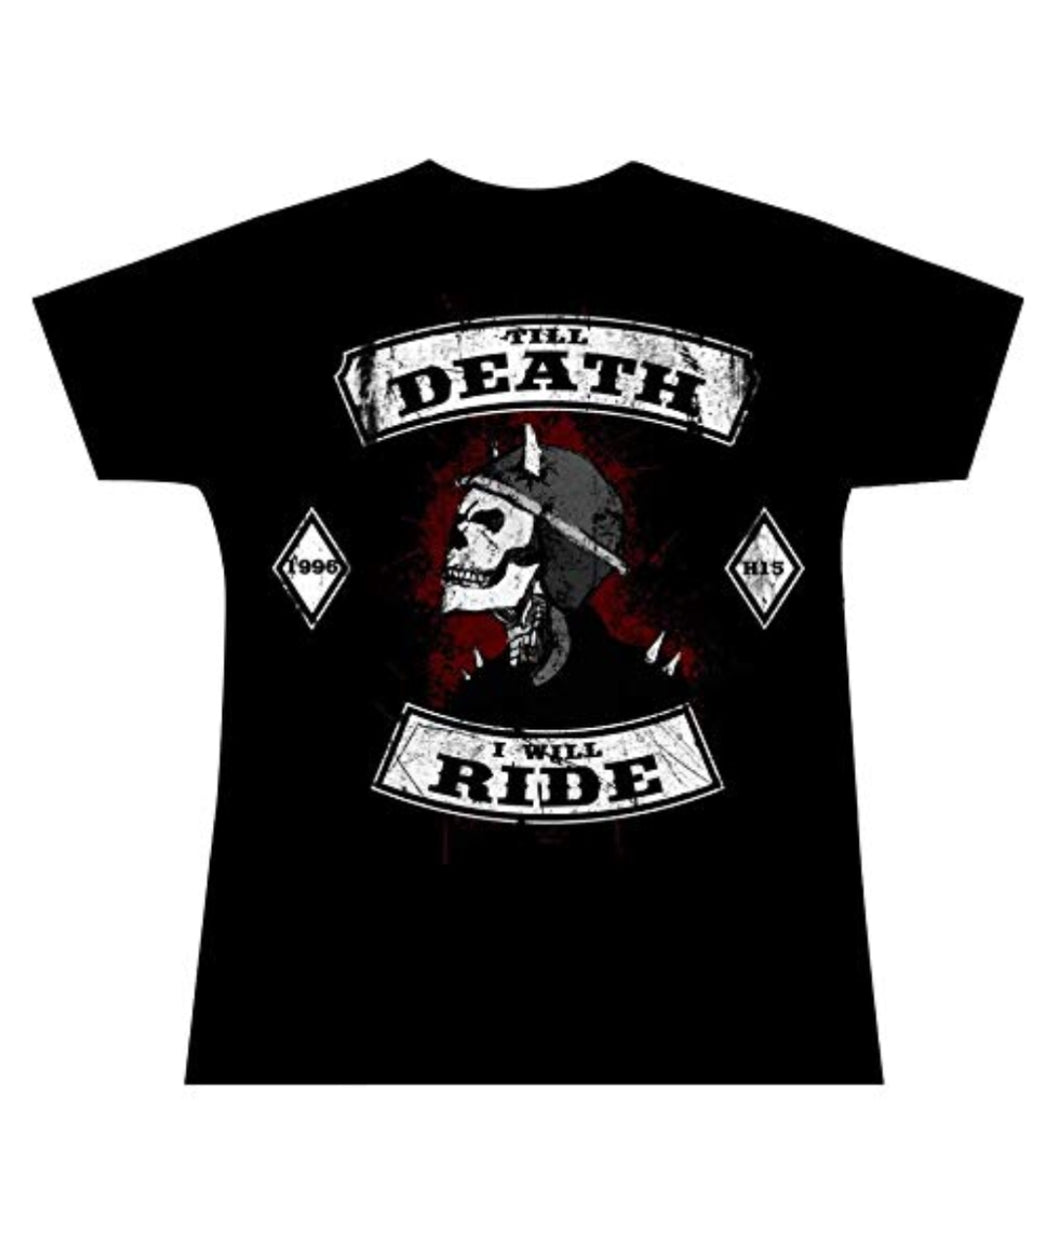 Till Death Rider Girlie Official H15 Girly T-Shirt